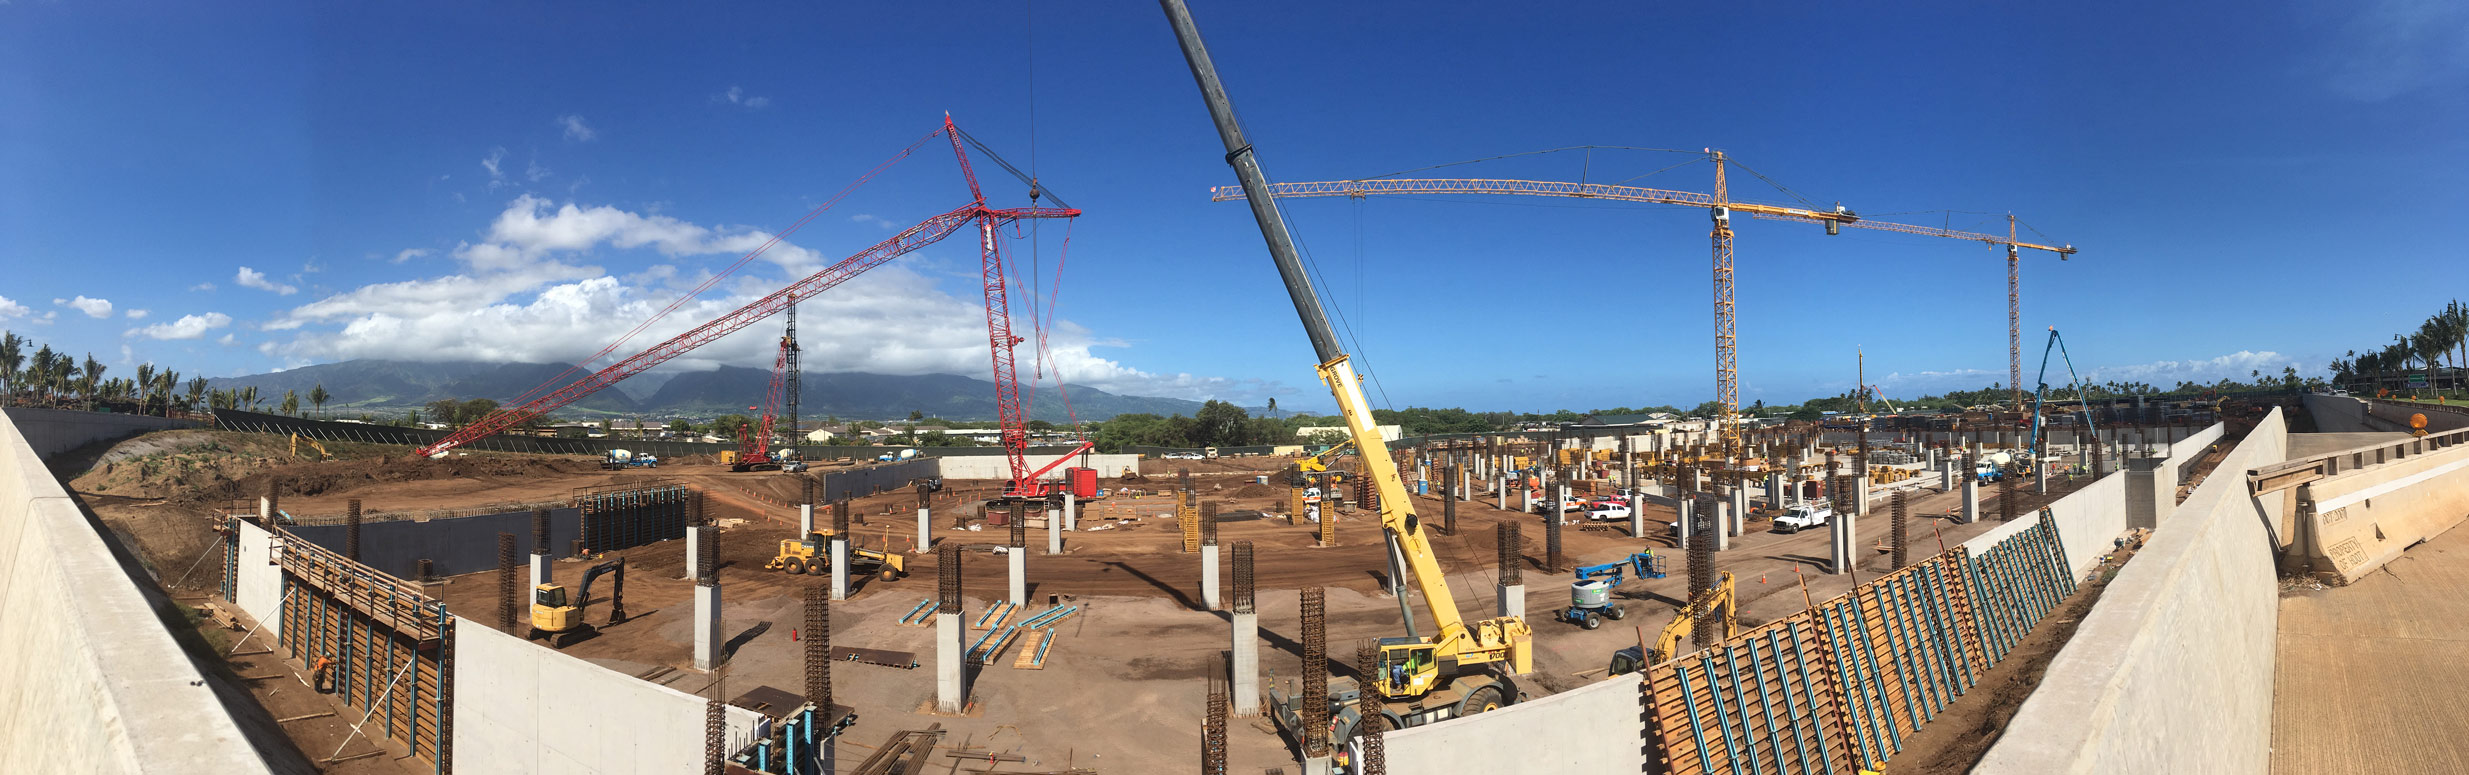 Consolidated Rent-A-Car (Conrac) facility at Kahului Airport